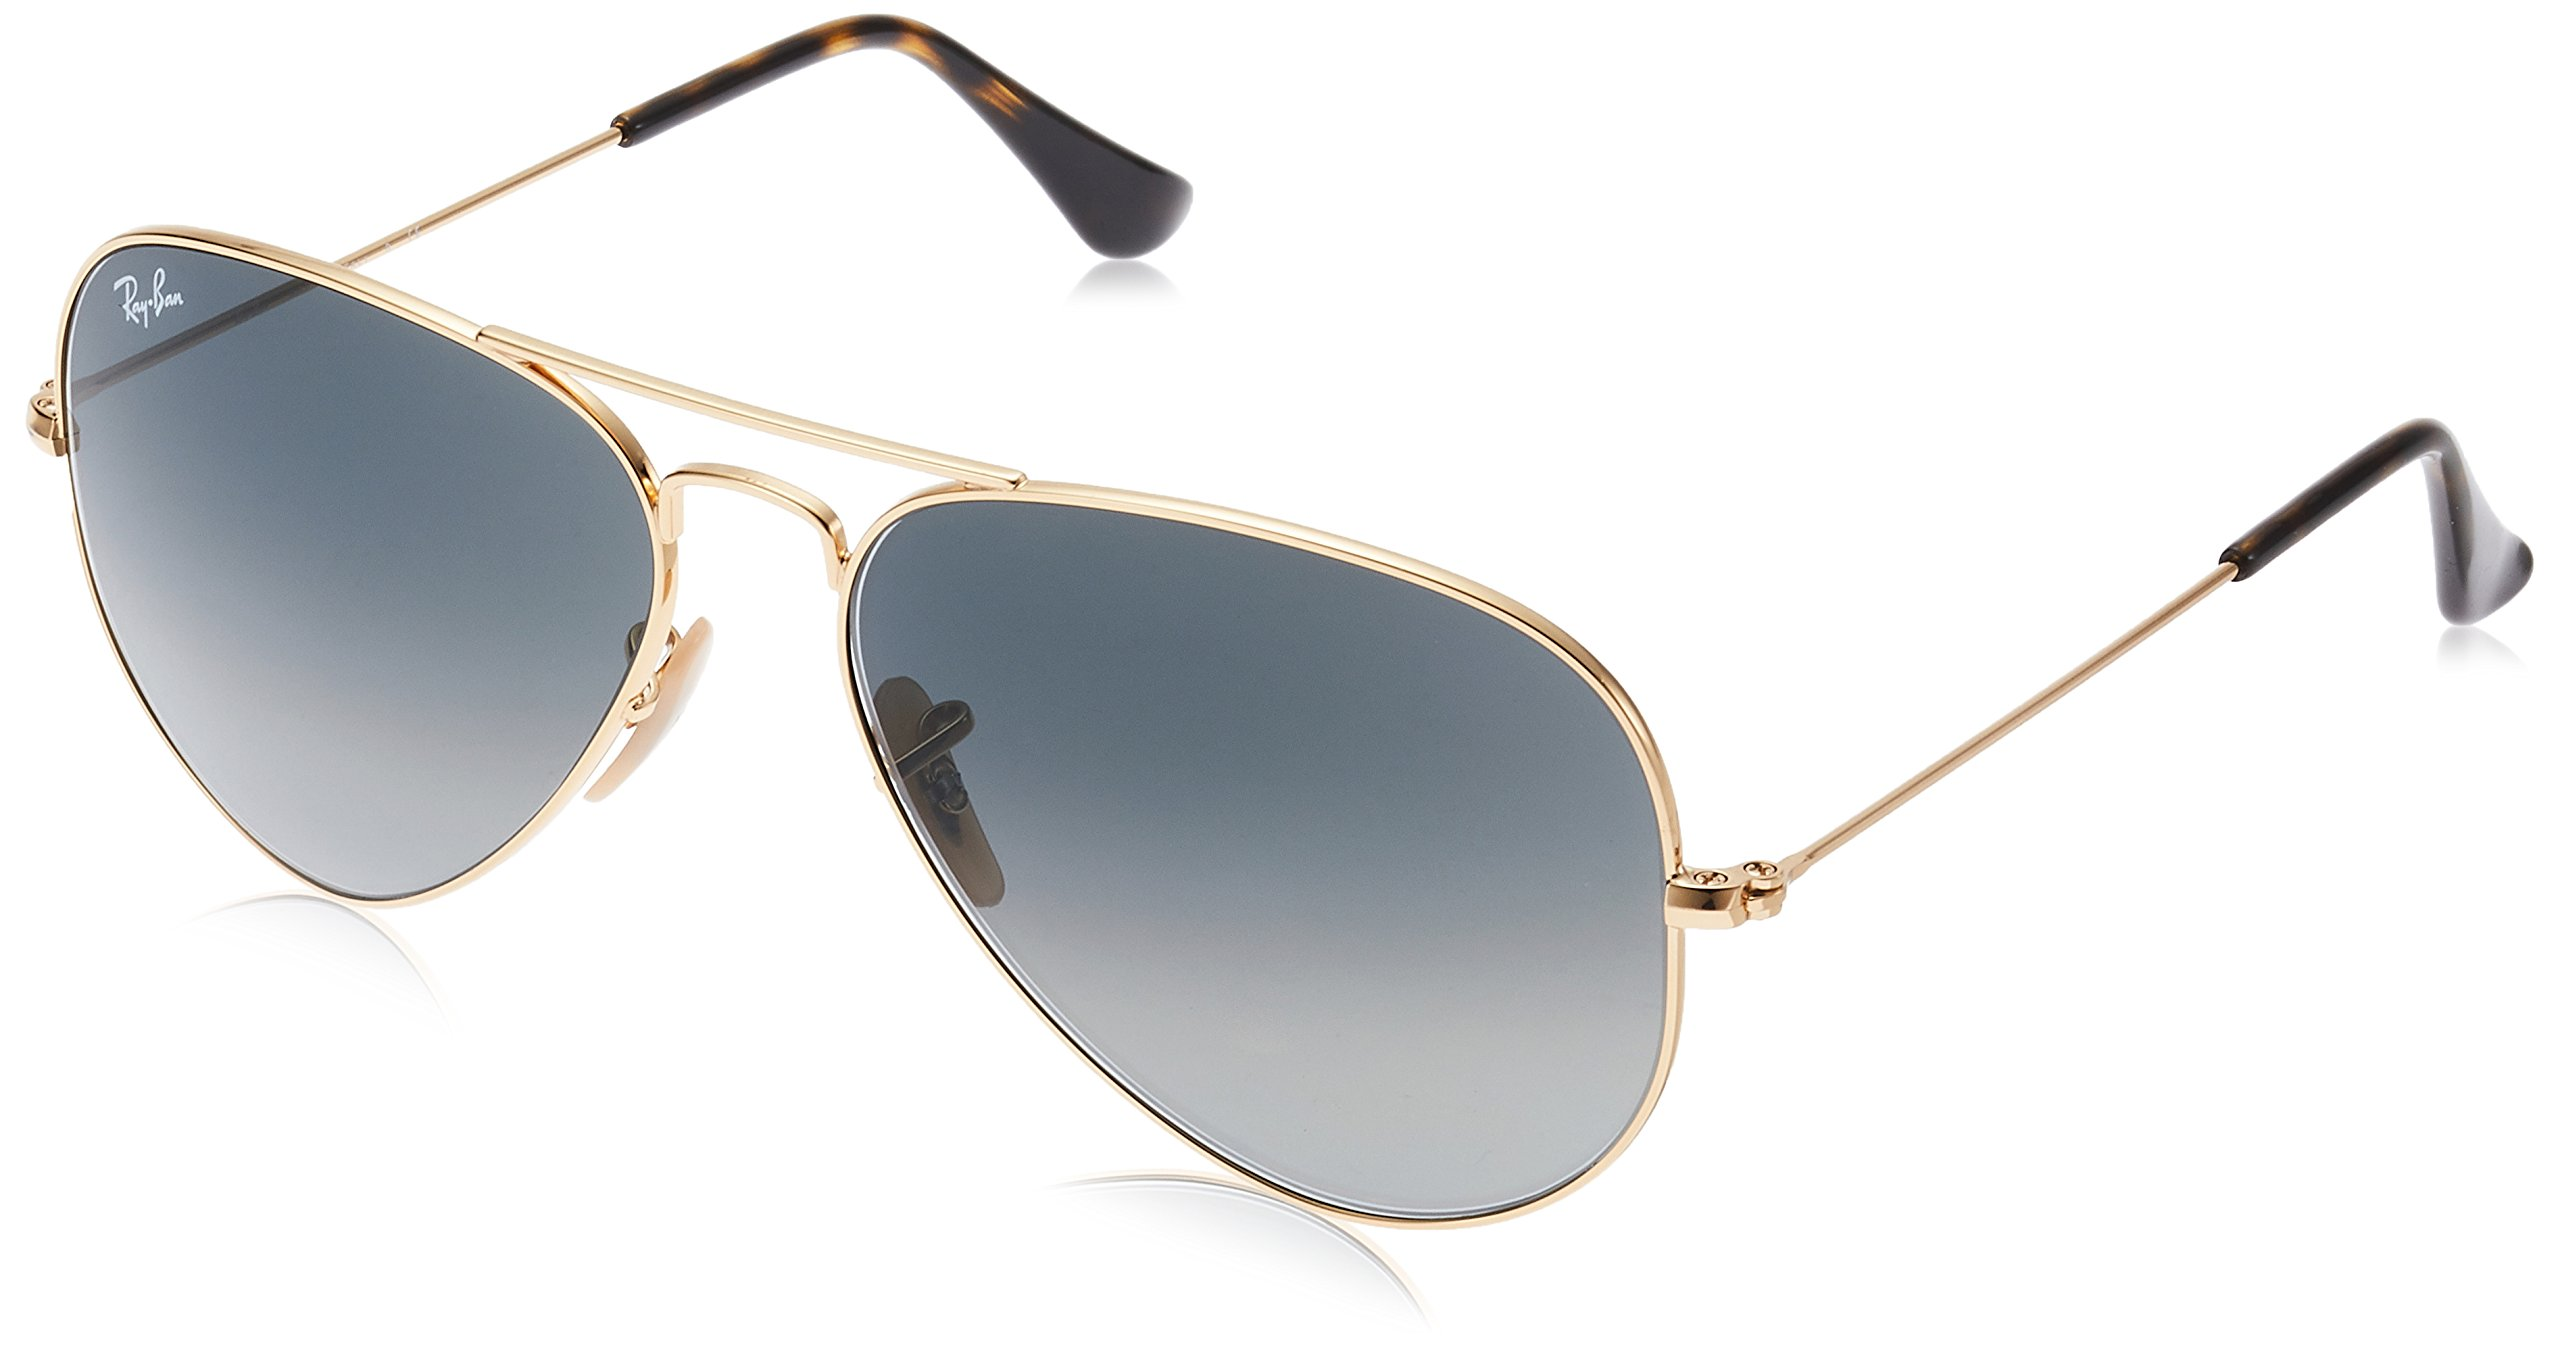 RAY-BAN RB3025 Aviator Large Metal Sunglasses, Gold/Grey Gradient, 58 mm by RAY-BAN